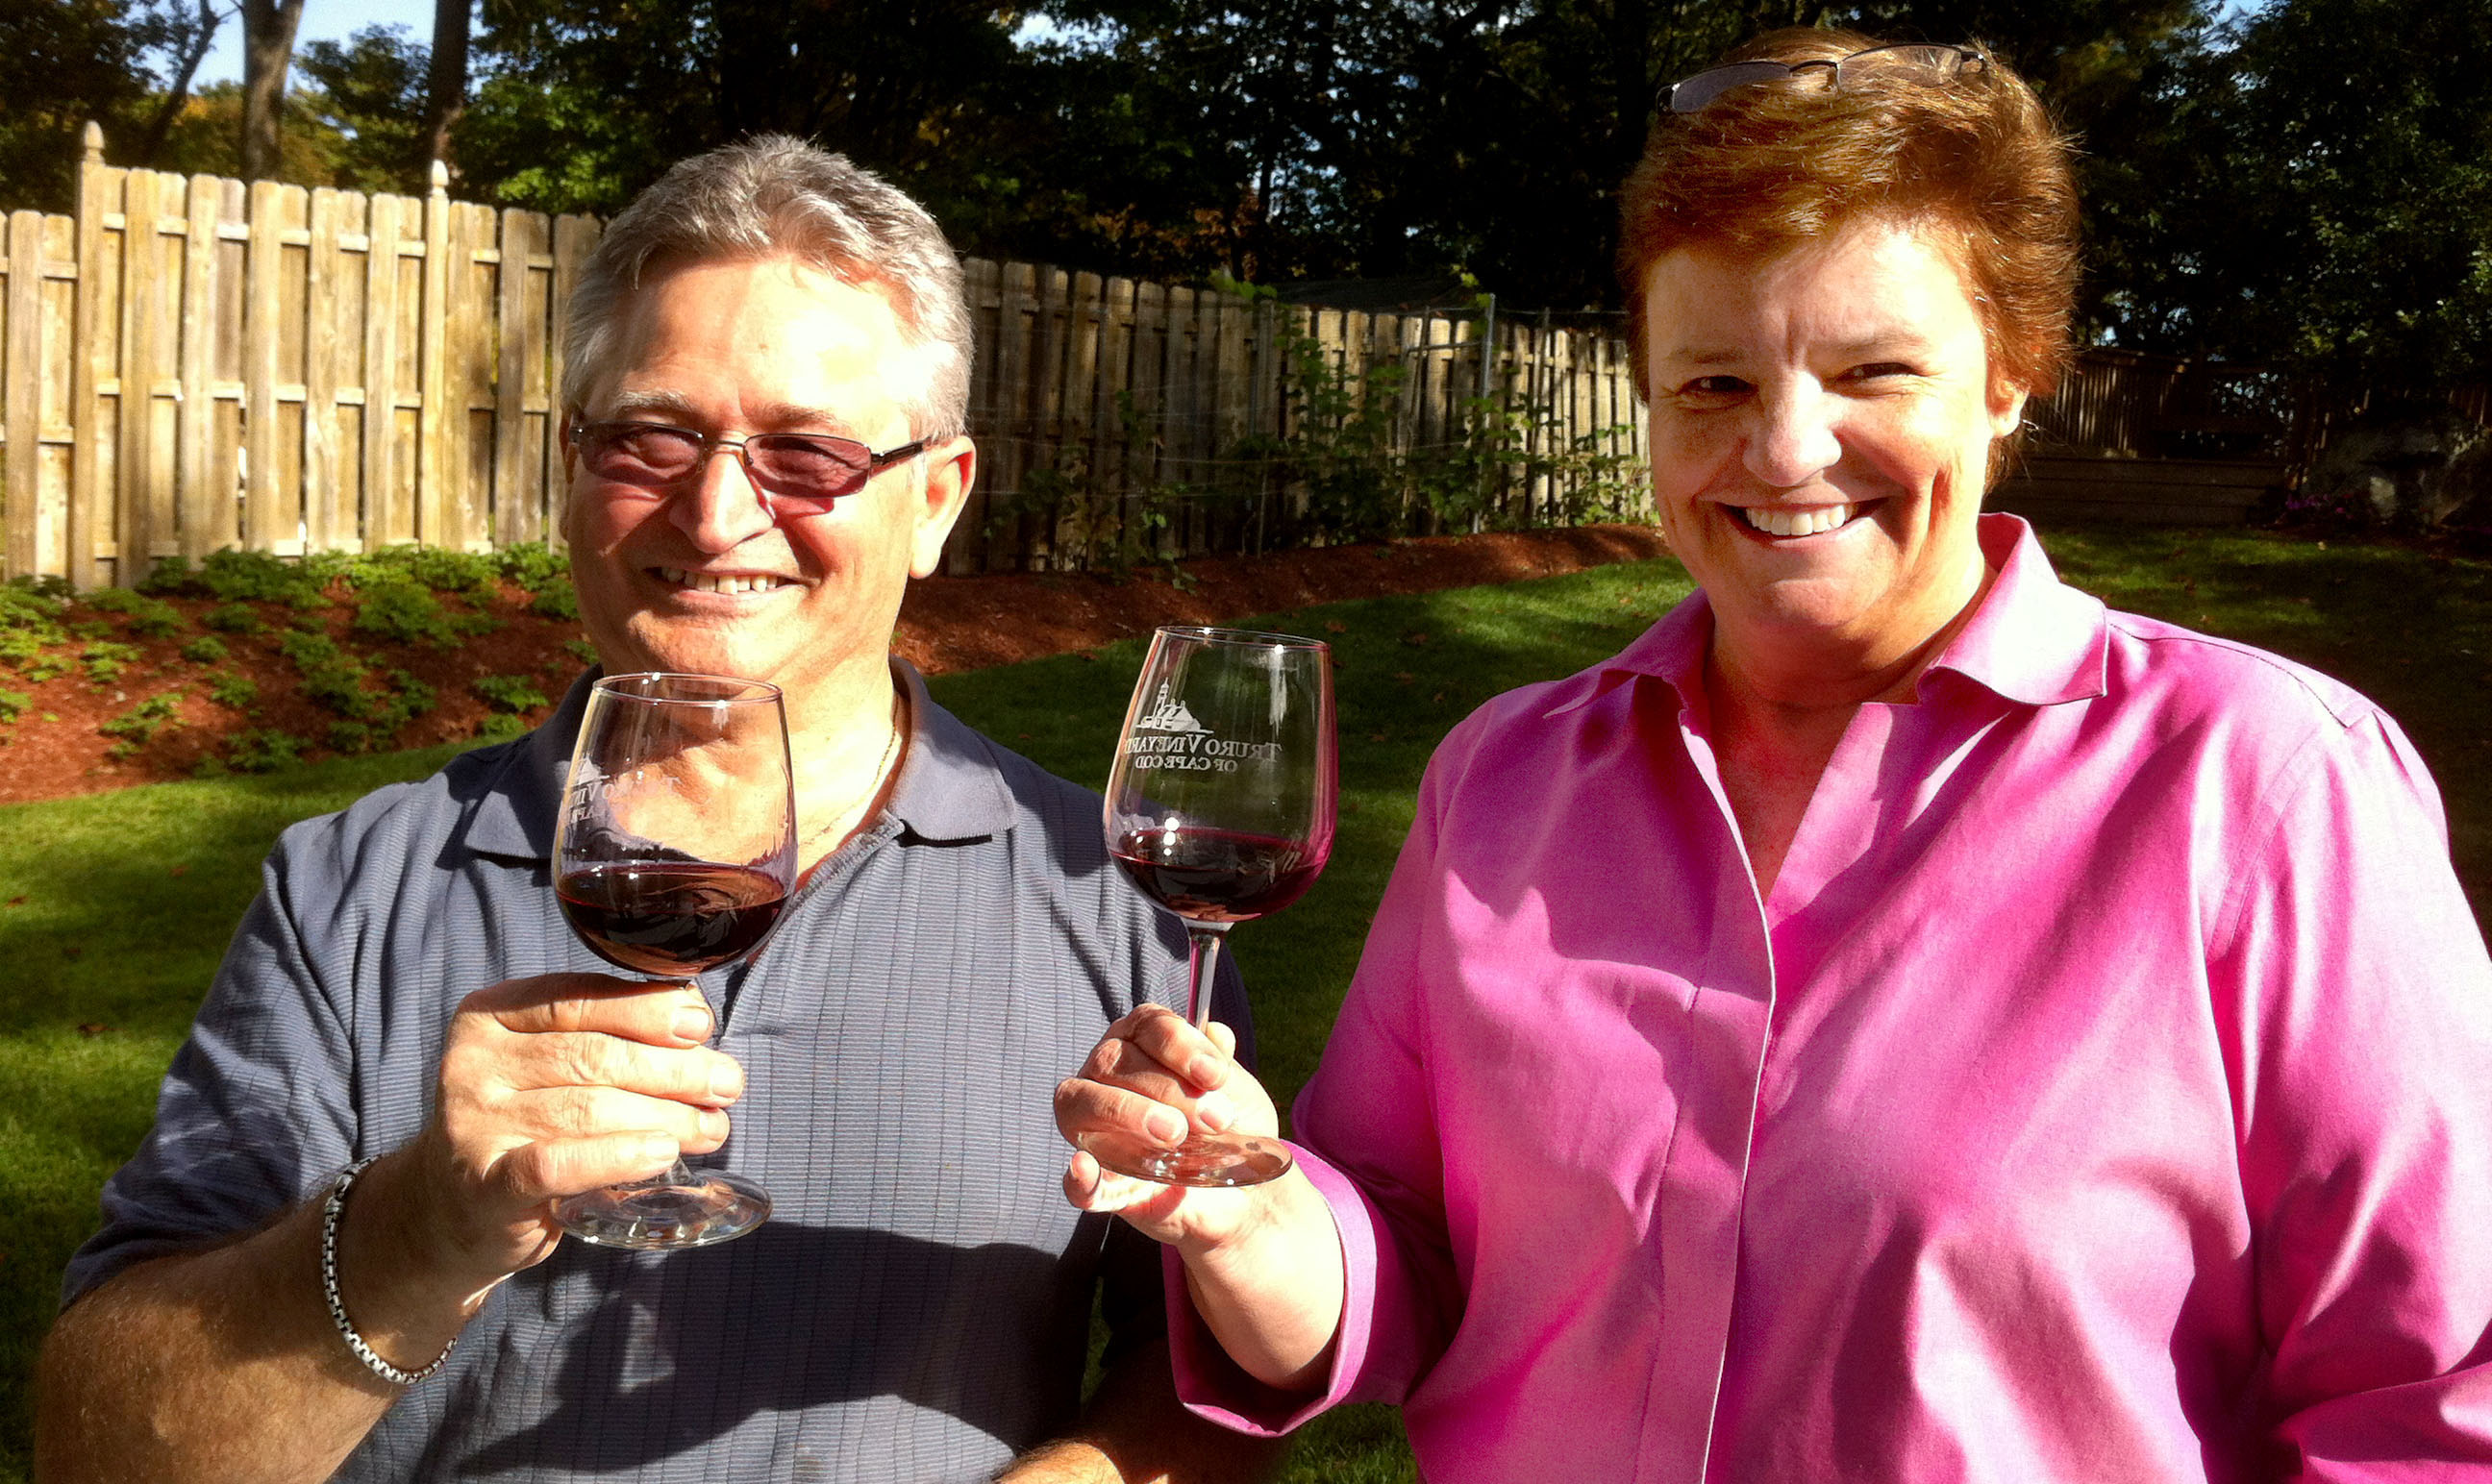 A man and a woman holding glasses of wine